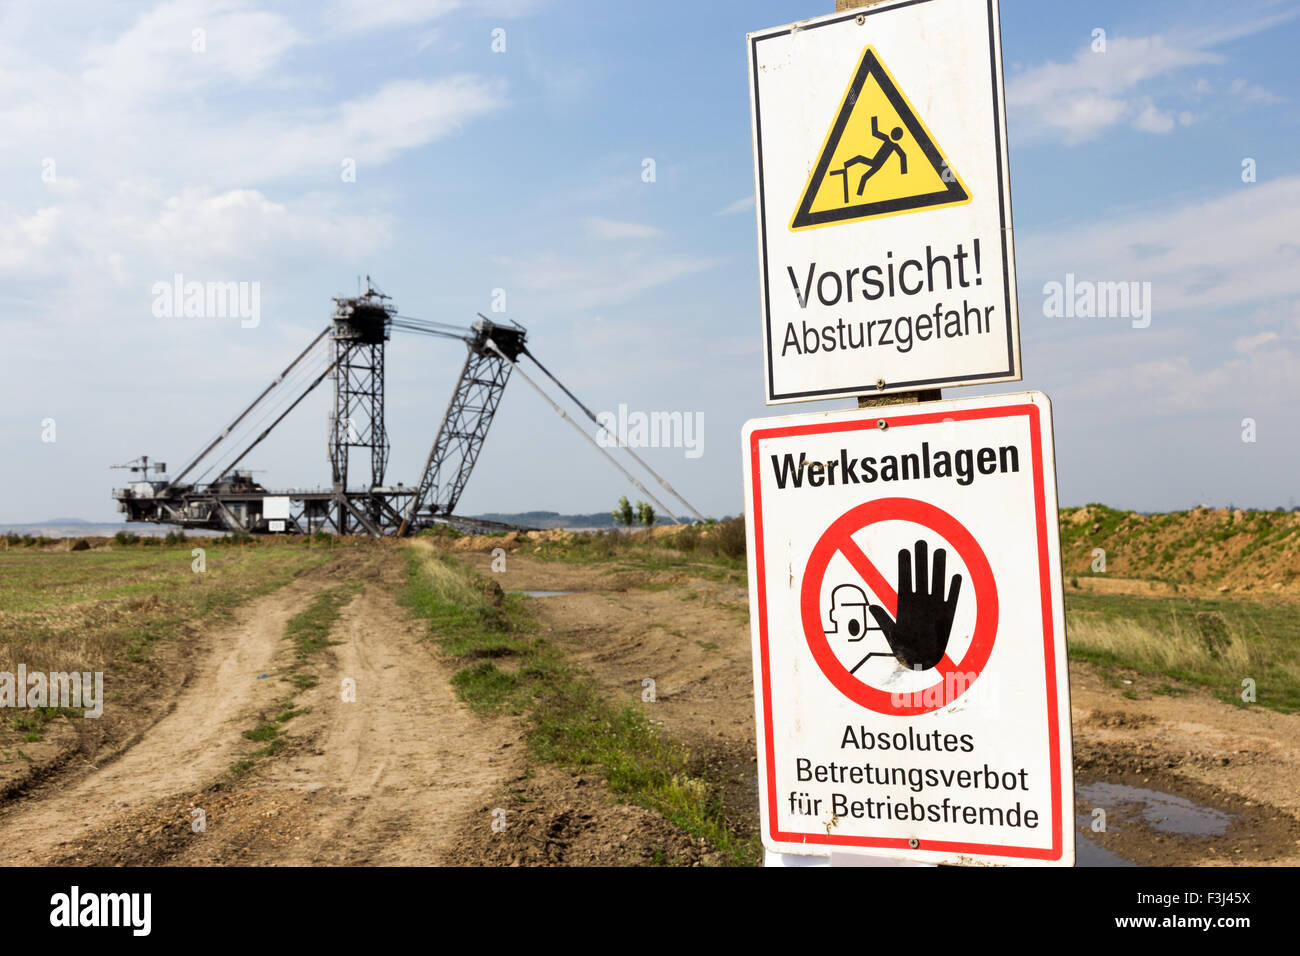 Warning sign near a giant mining excavator at a open pit mine near Cologne. Stock Photo